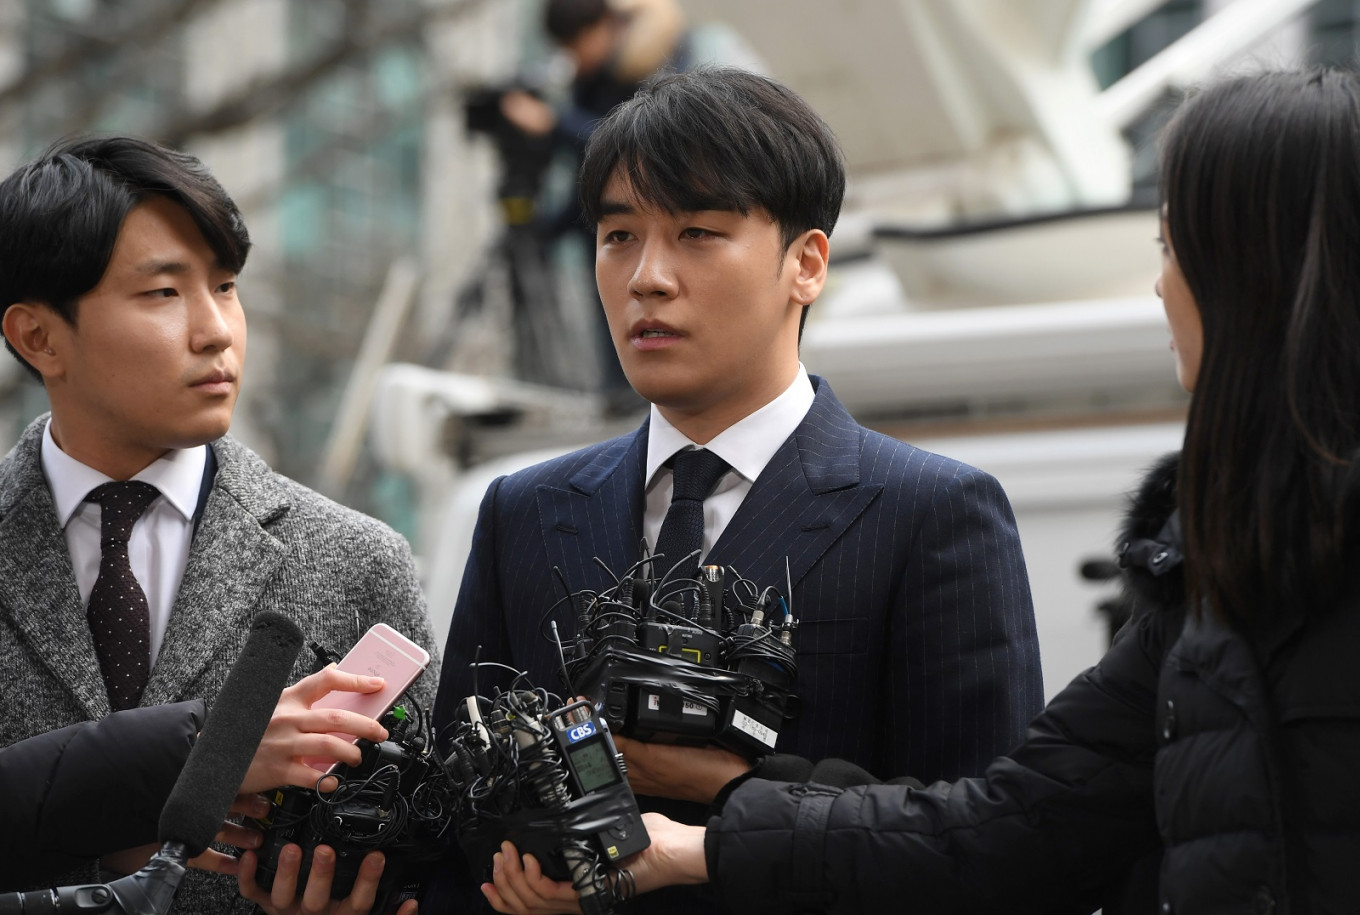 Seungri seeks to postpone enlistment, Jung surrenders 'golden' phone